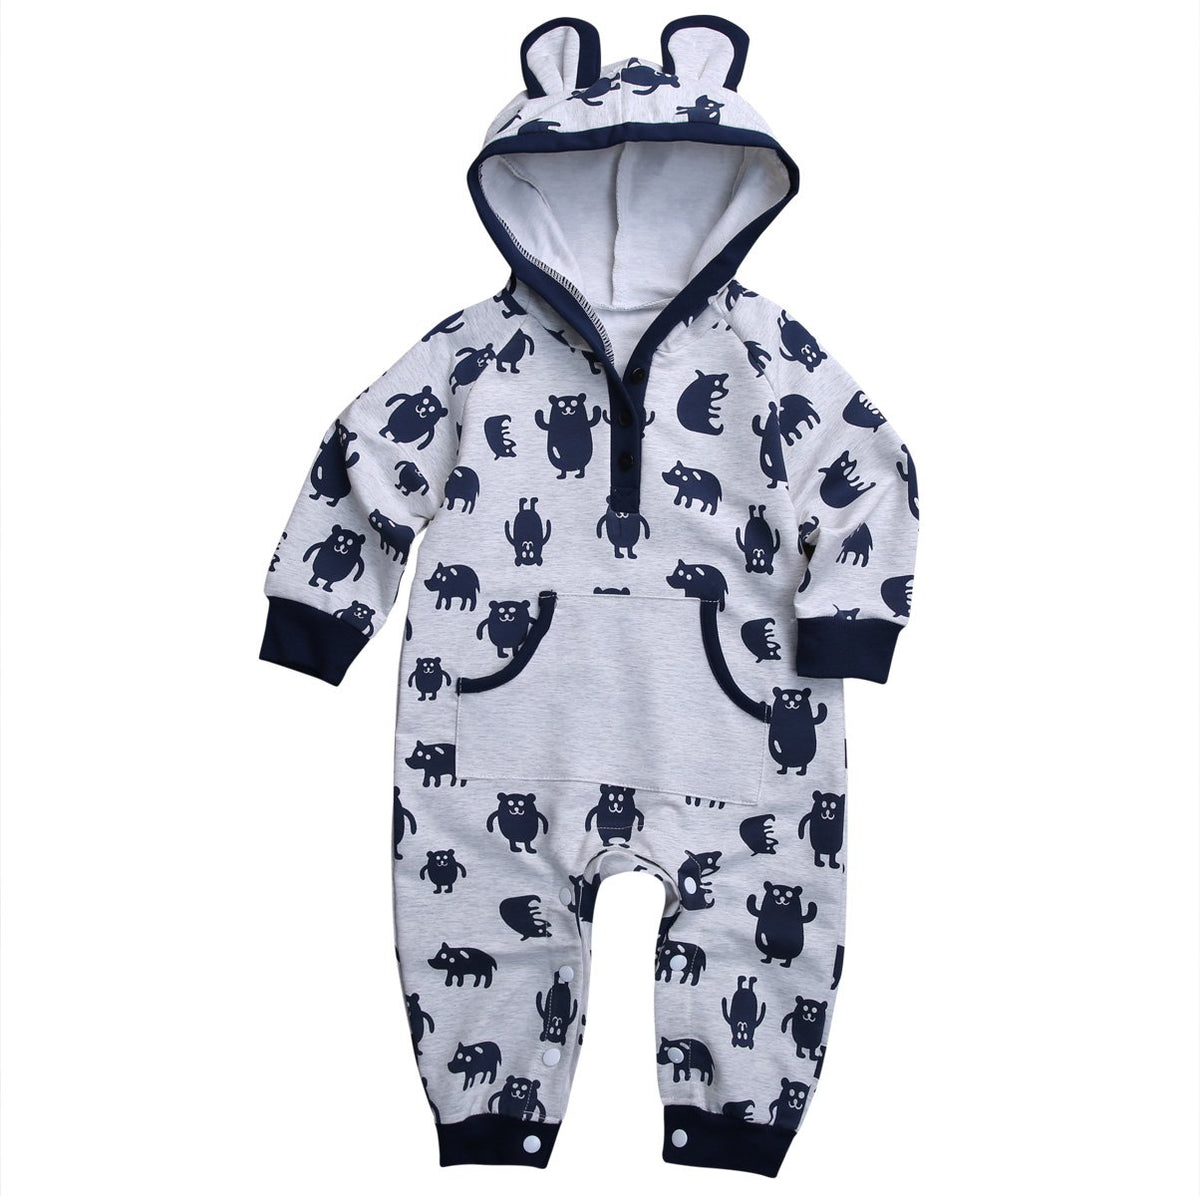 - 0-18M Newborn Infant Baby Boy Girl Kids Clothes Cotton Long Sleeve Hooded Romper Jumpsuit Outfit - Gray / 10-12 months  jetcube